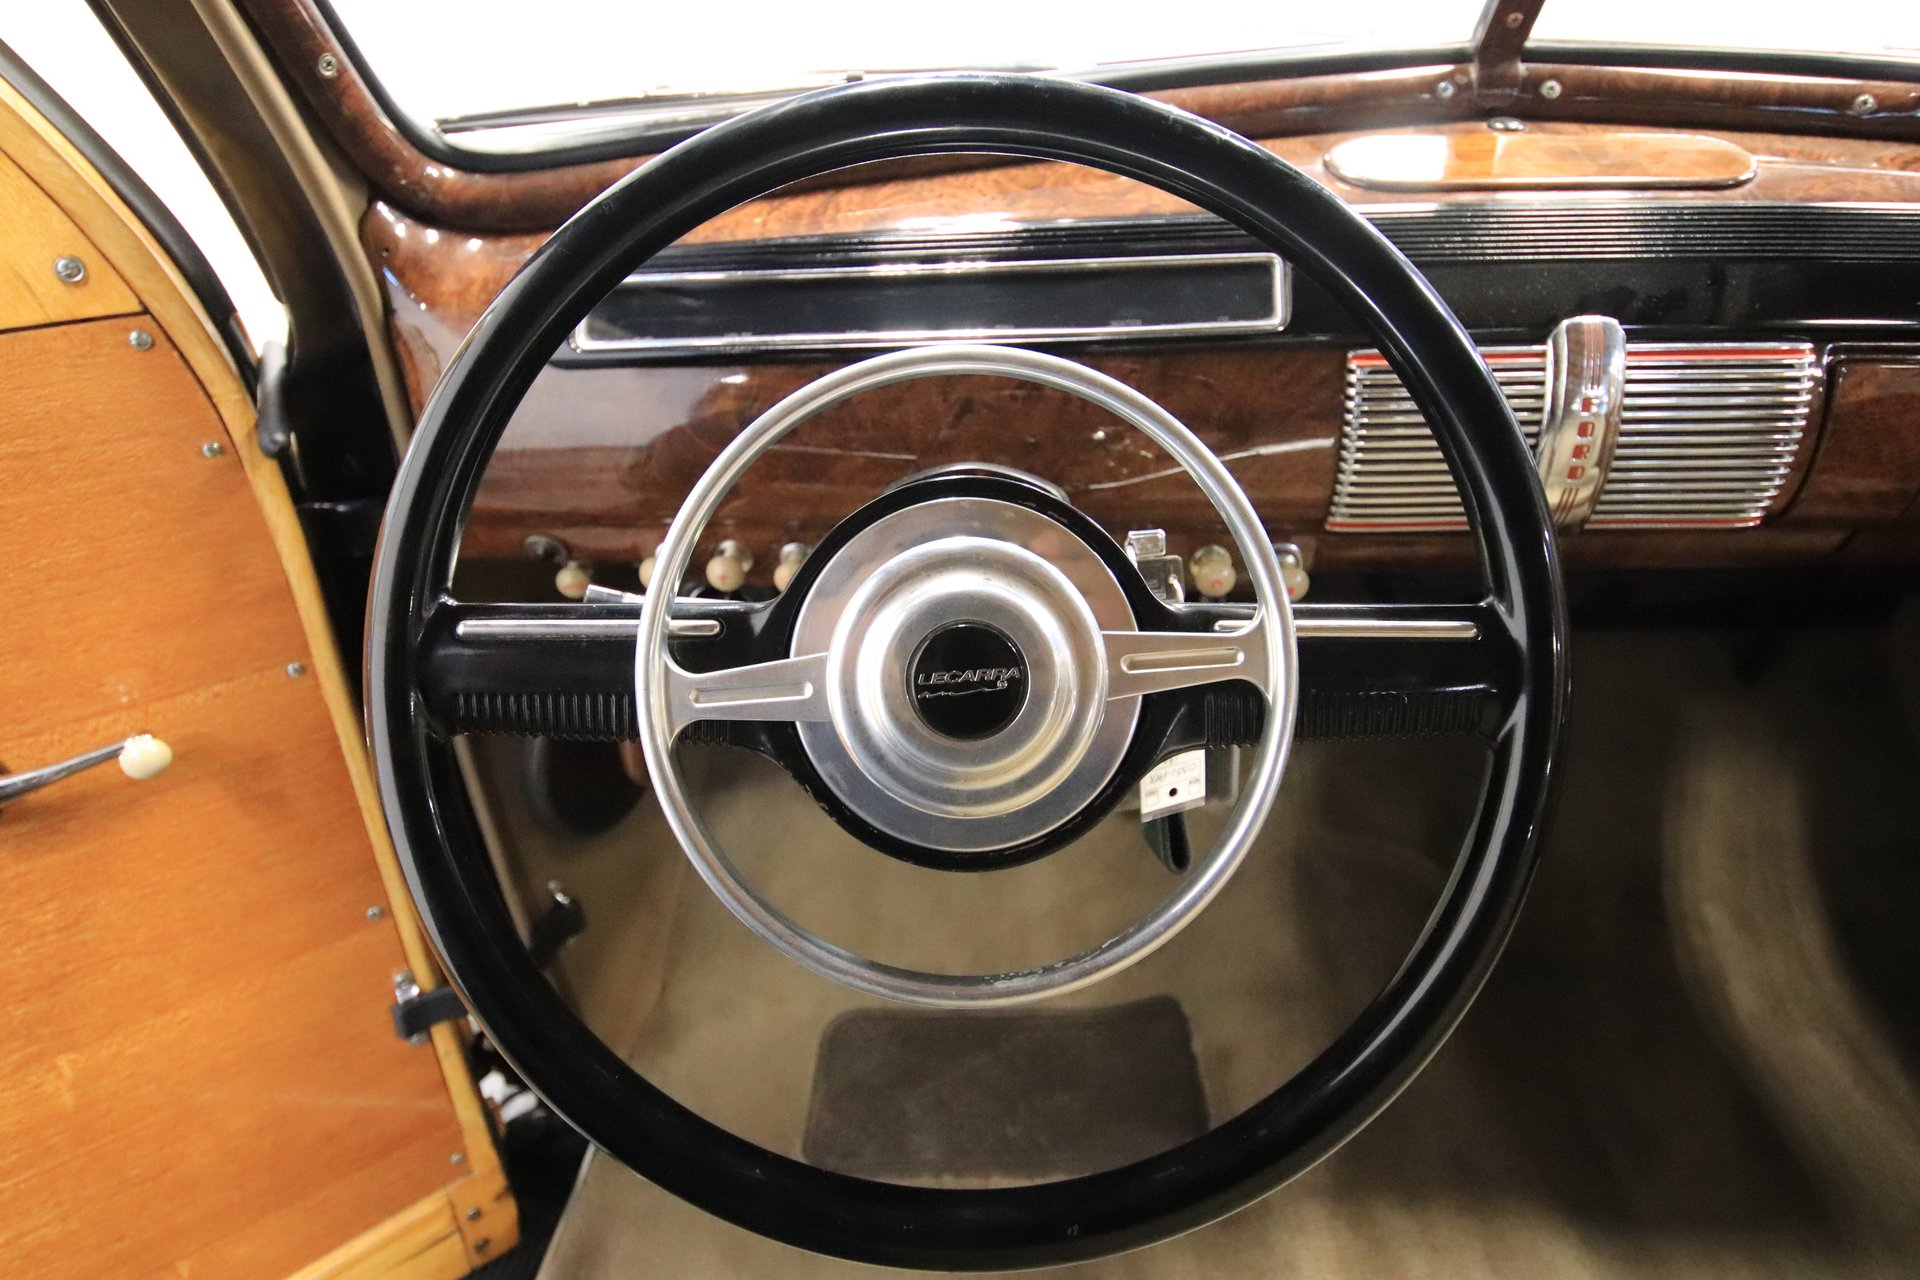 1941 Ford Super Deluxe Streetside Classics The Nations Trusted Station Wagon View 360